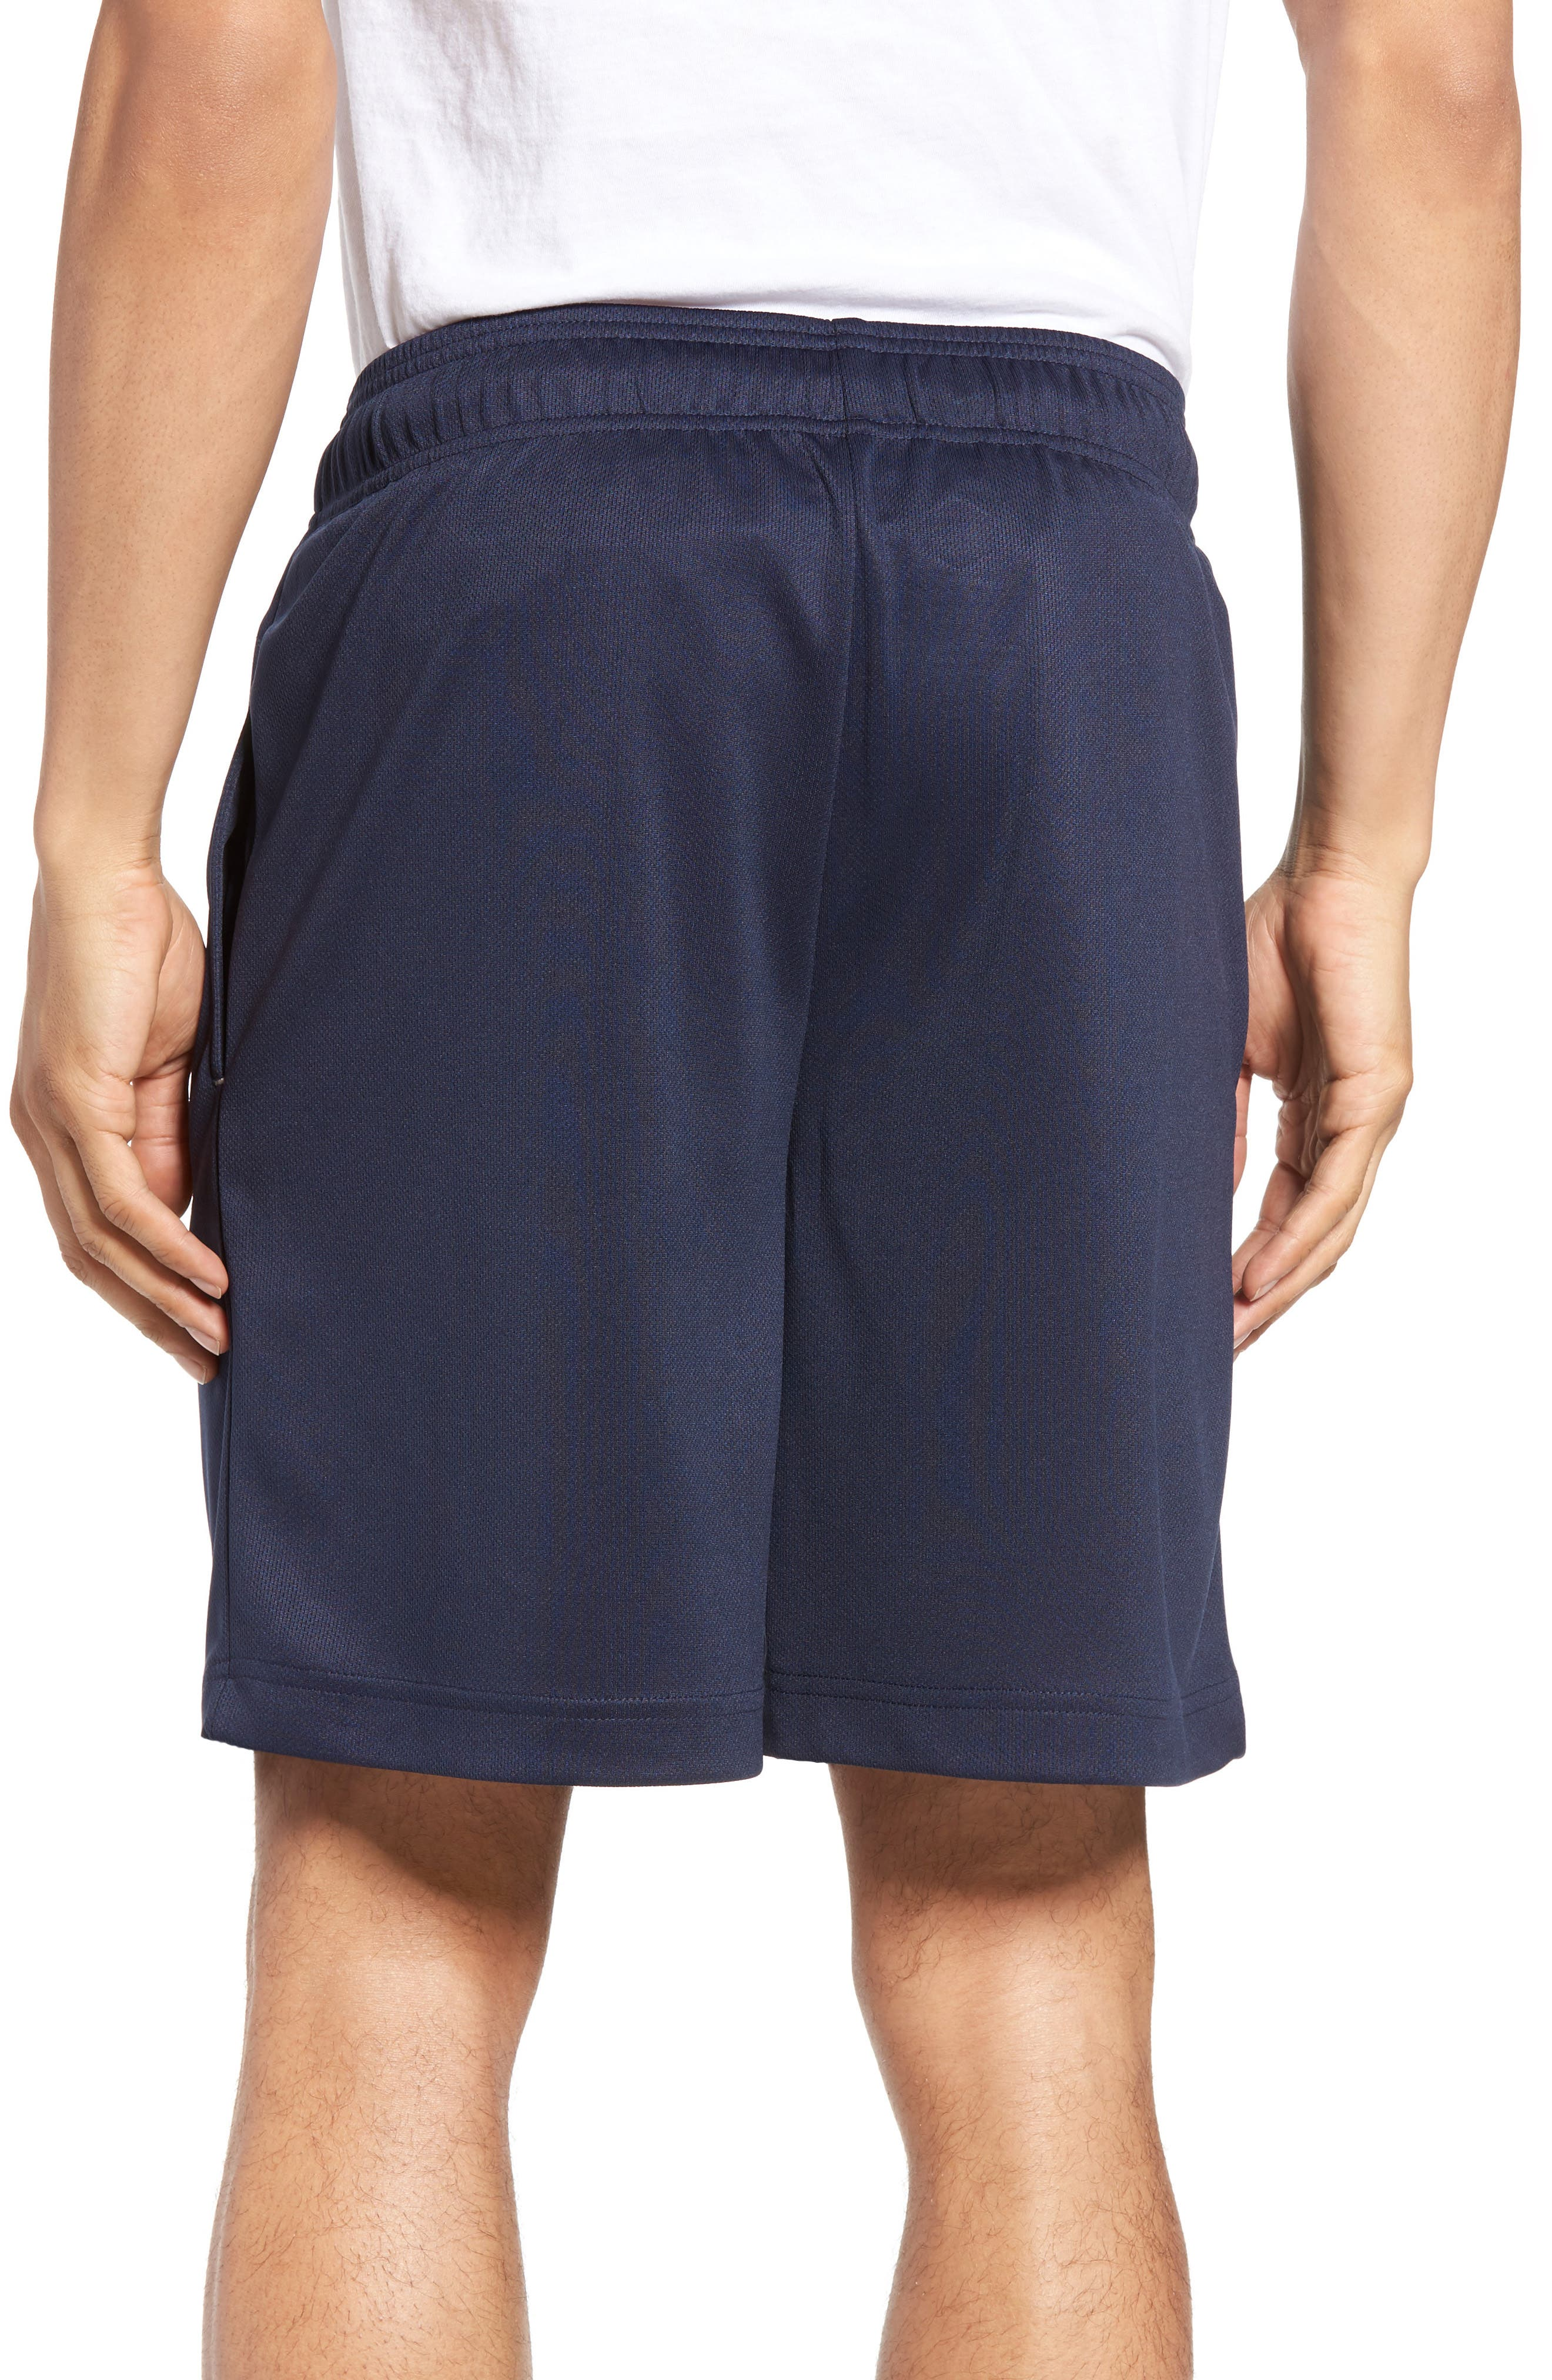 Work Out Lounge Shorts,                             Alternate thumbnail 6, color,